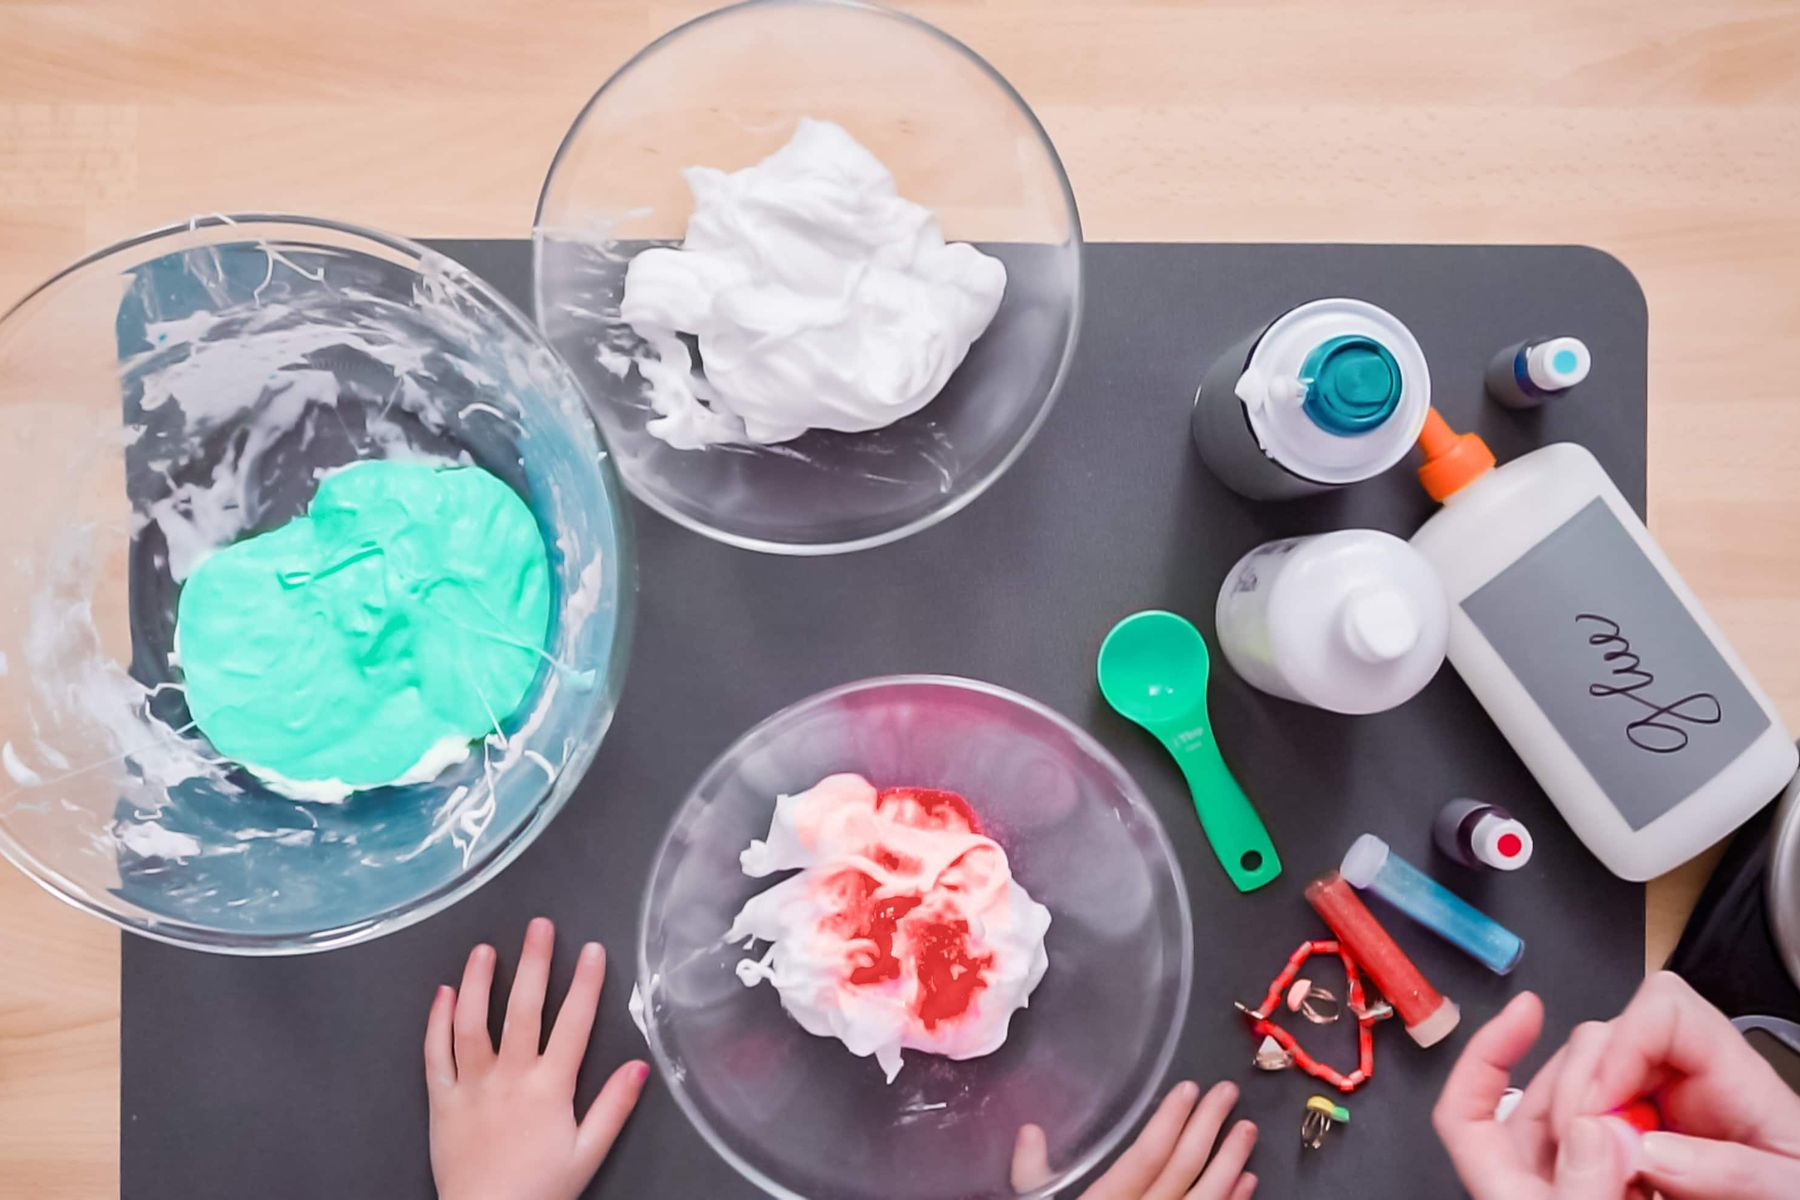 Bright slime making with childrens hands